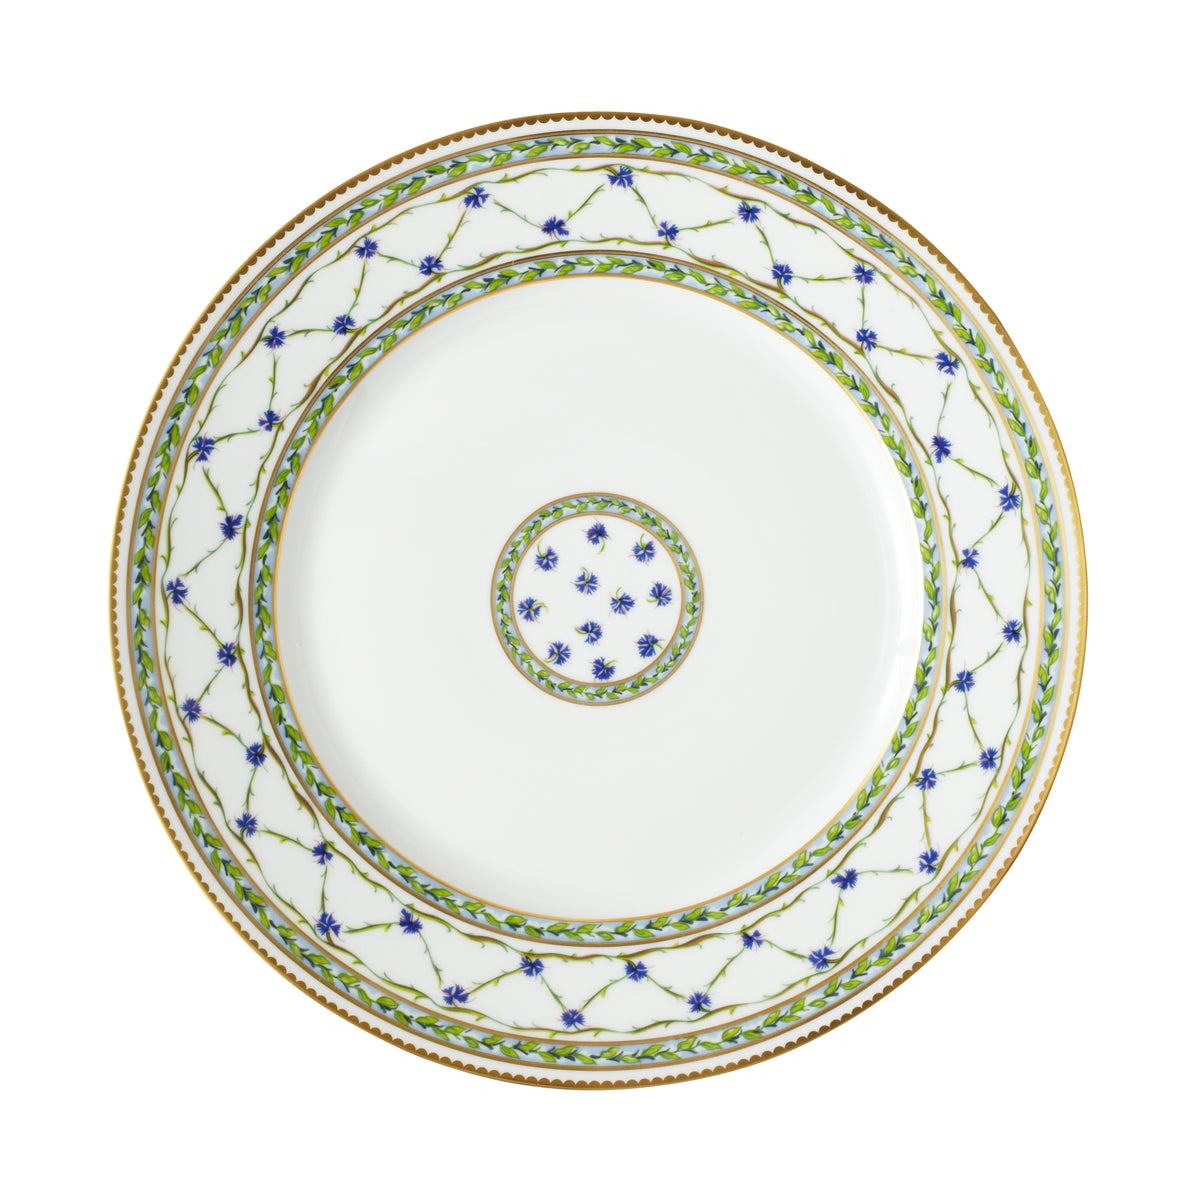 Allee Royale Porcelain Dinner Plate